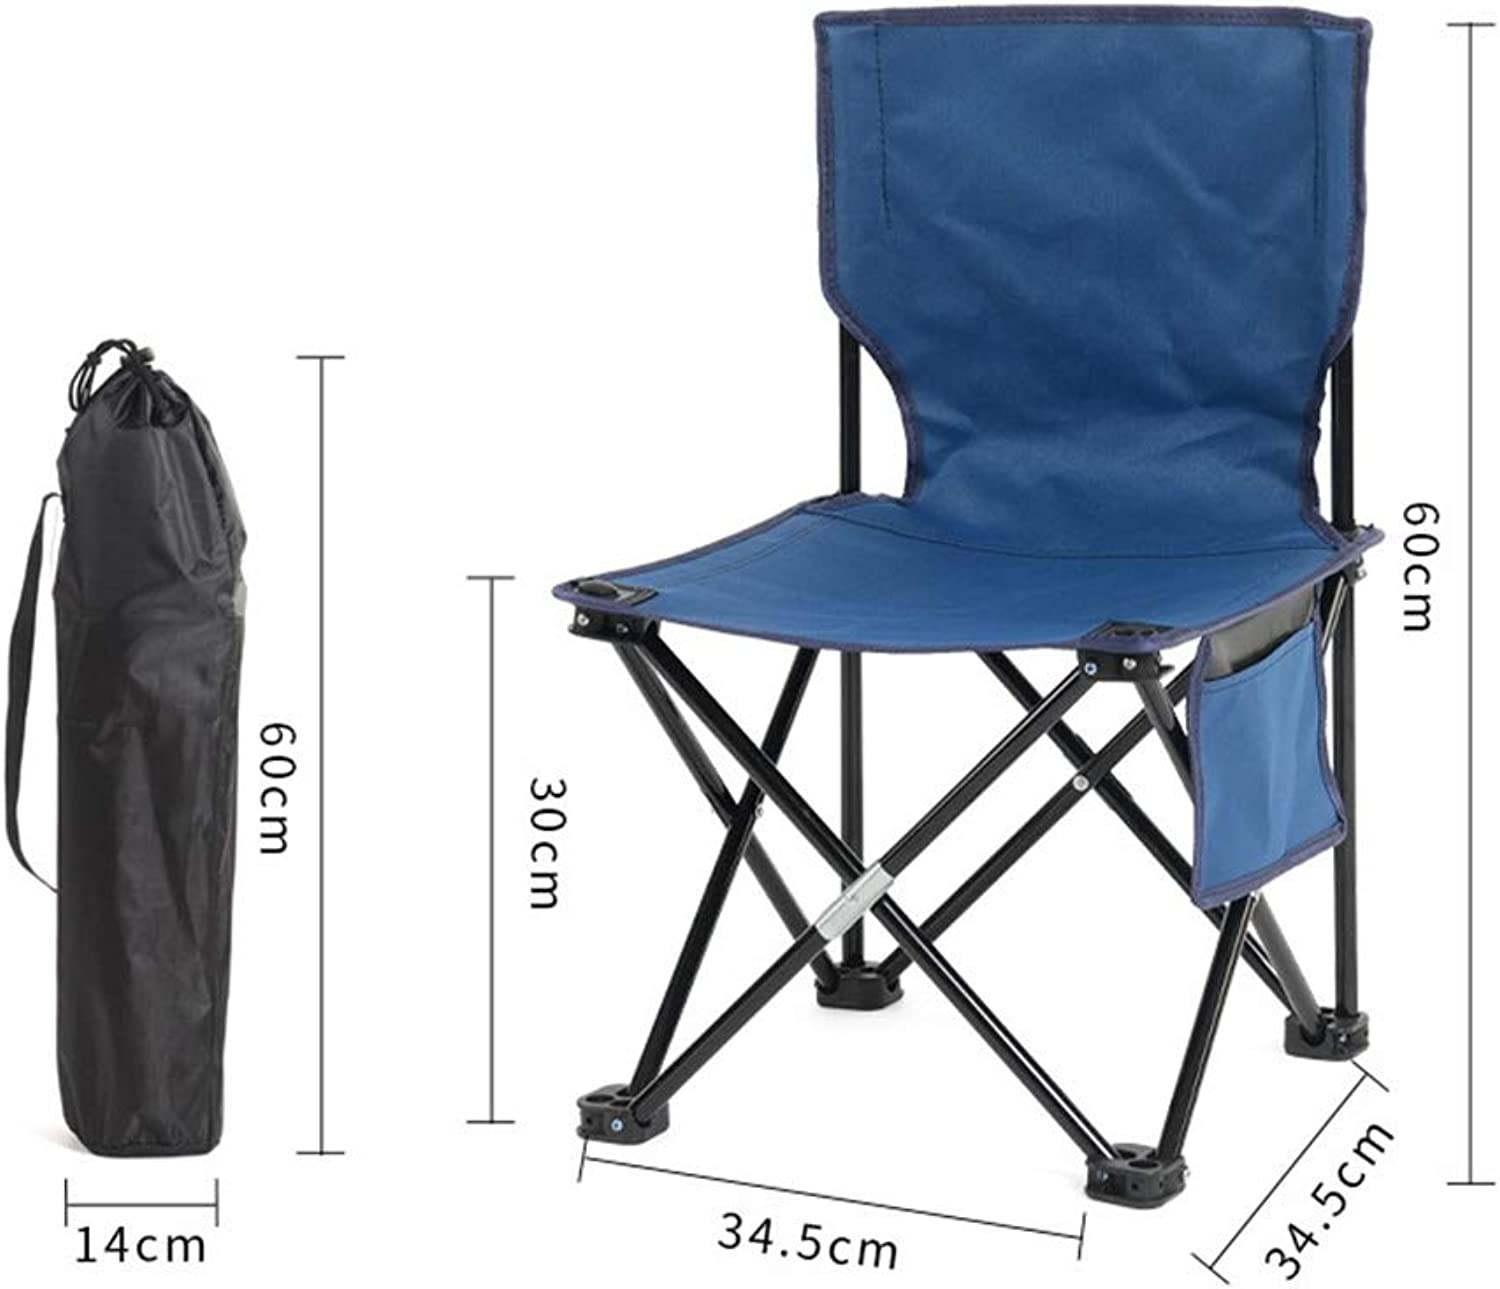 Camping Chair Folding Chair Folding Camping Chairs Ultralight Fishing Chair Moonchair Camping Stool with Backrest Carrying Bag for Fishing Hiking Picnic Fishing Chair Folding Garden Chair